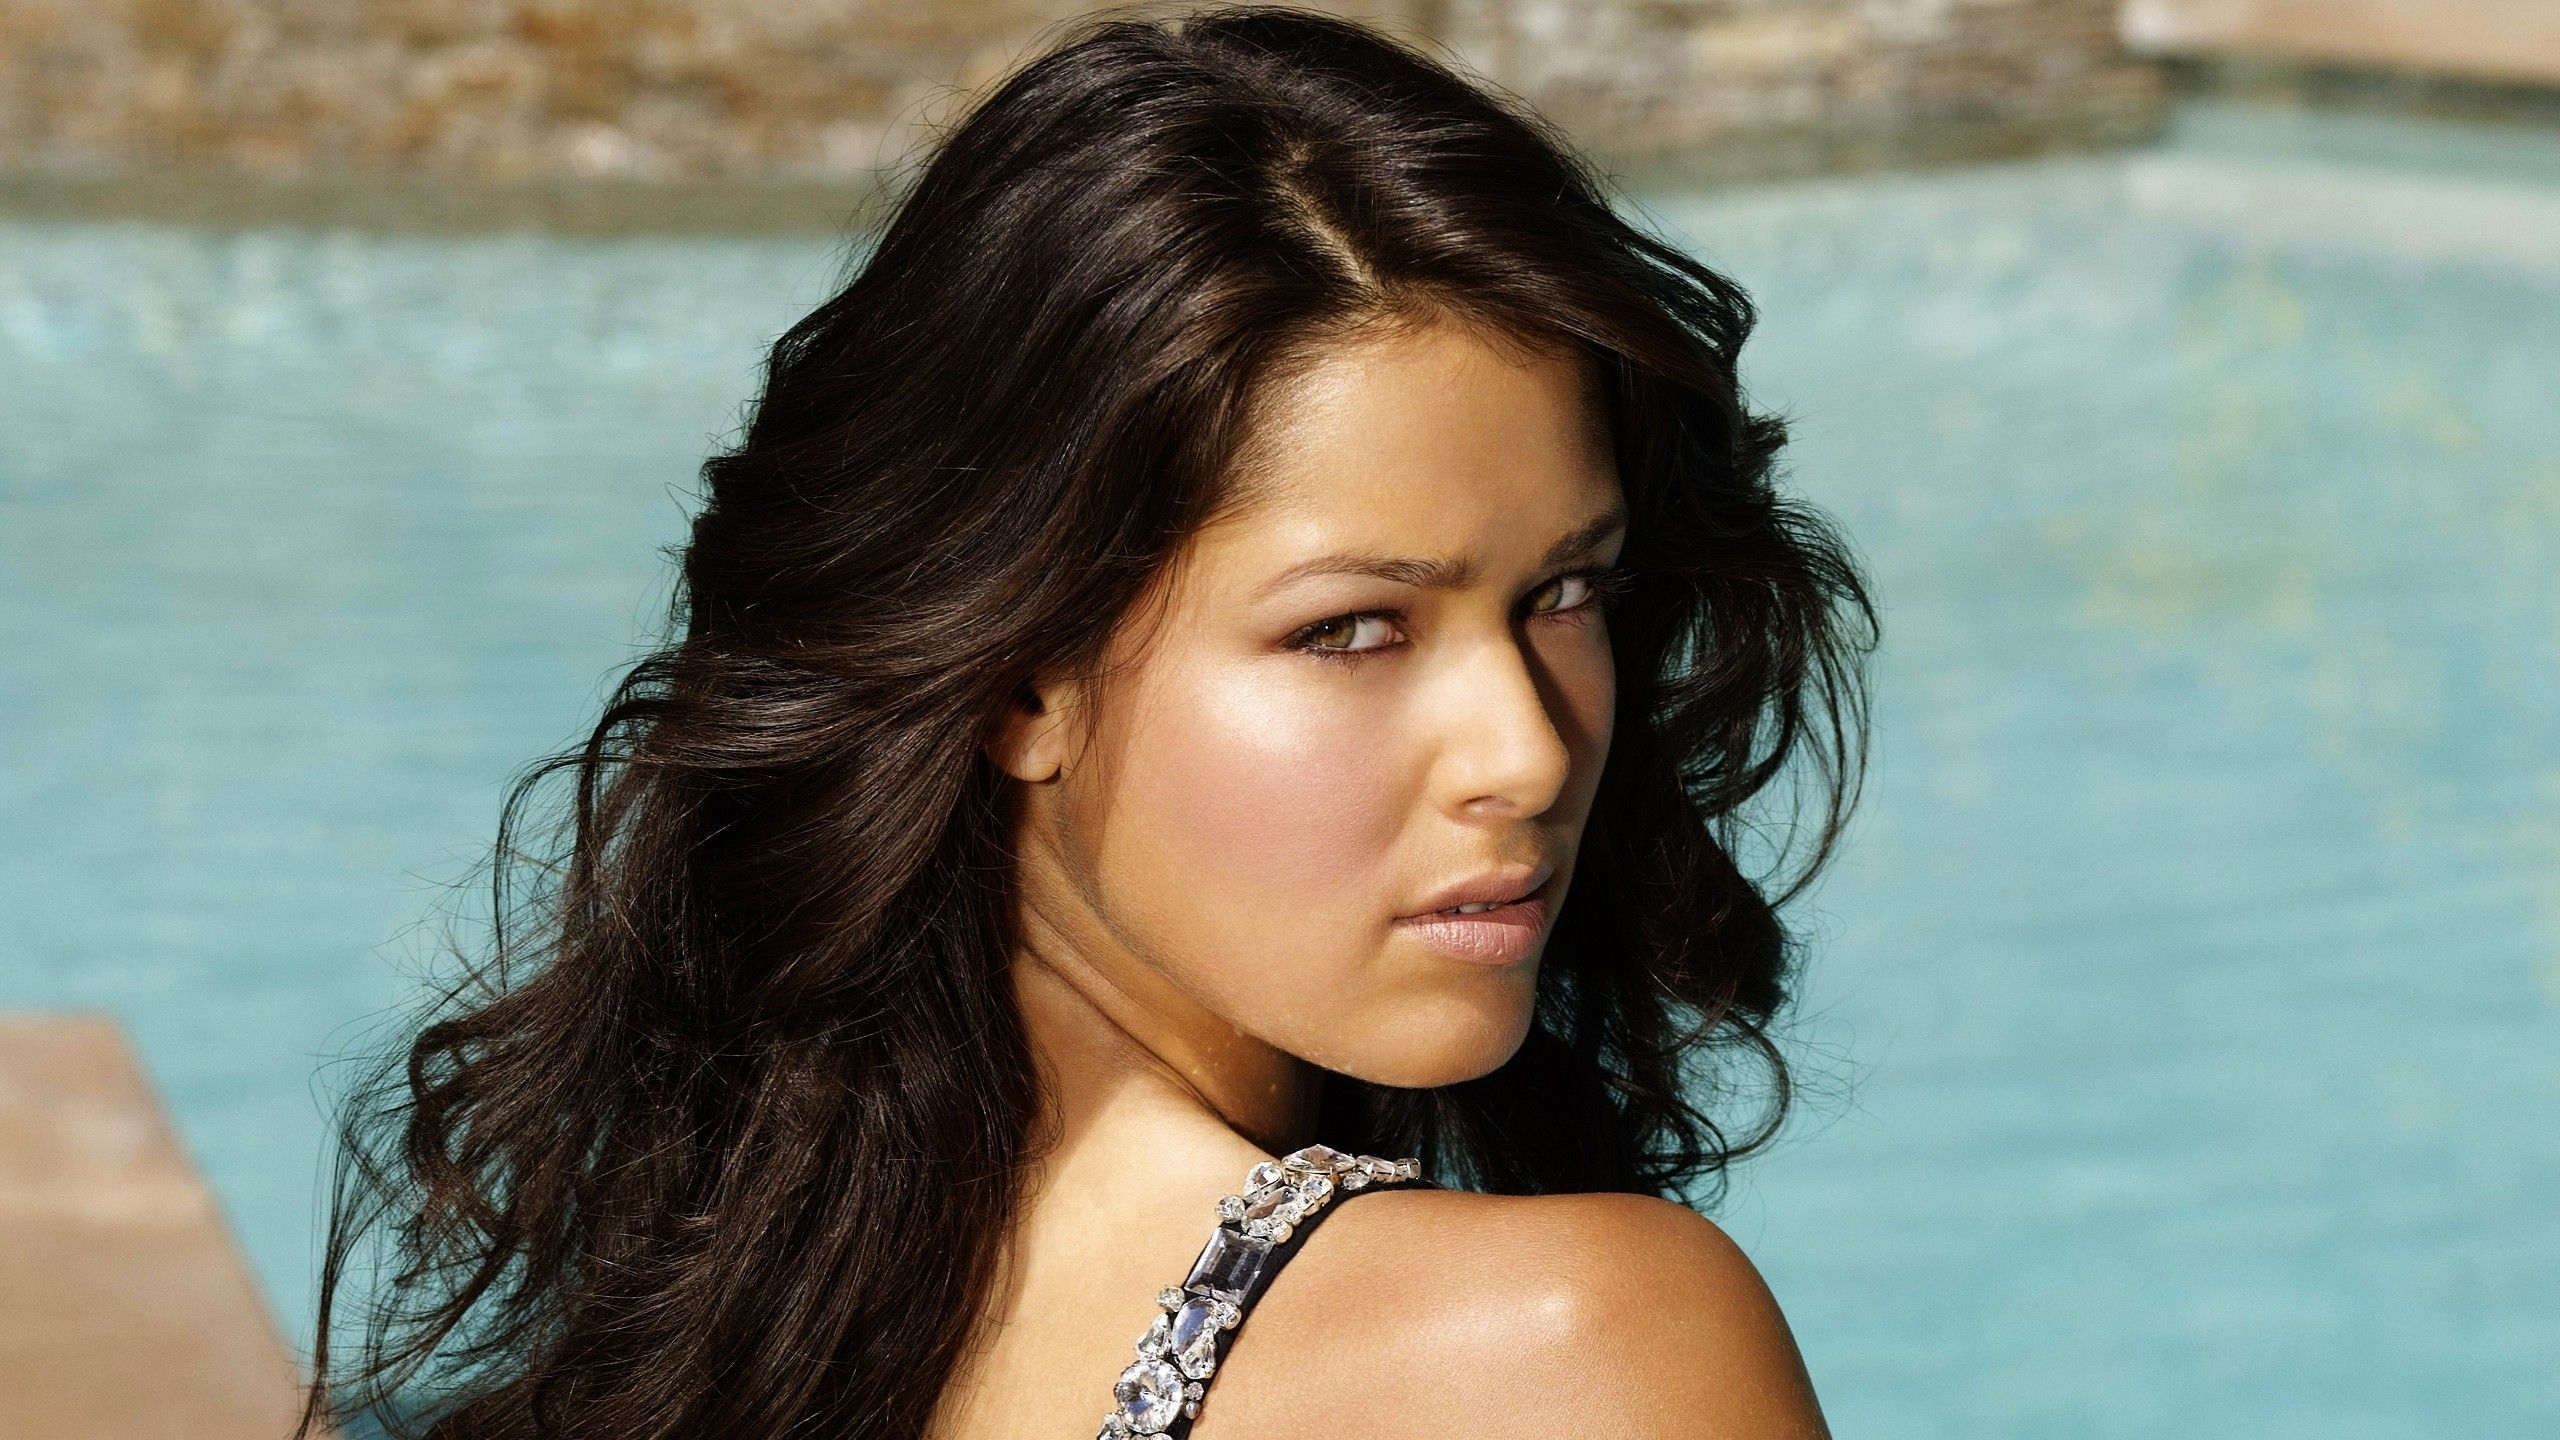 Ana Ivanovic Tumblr